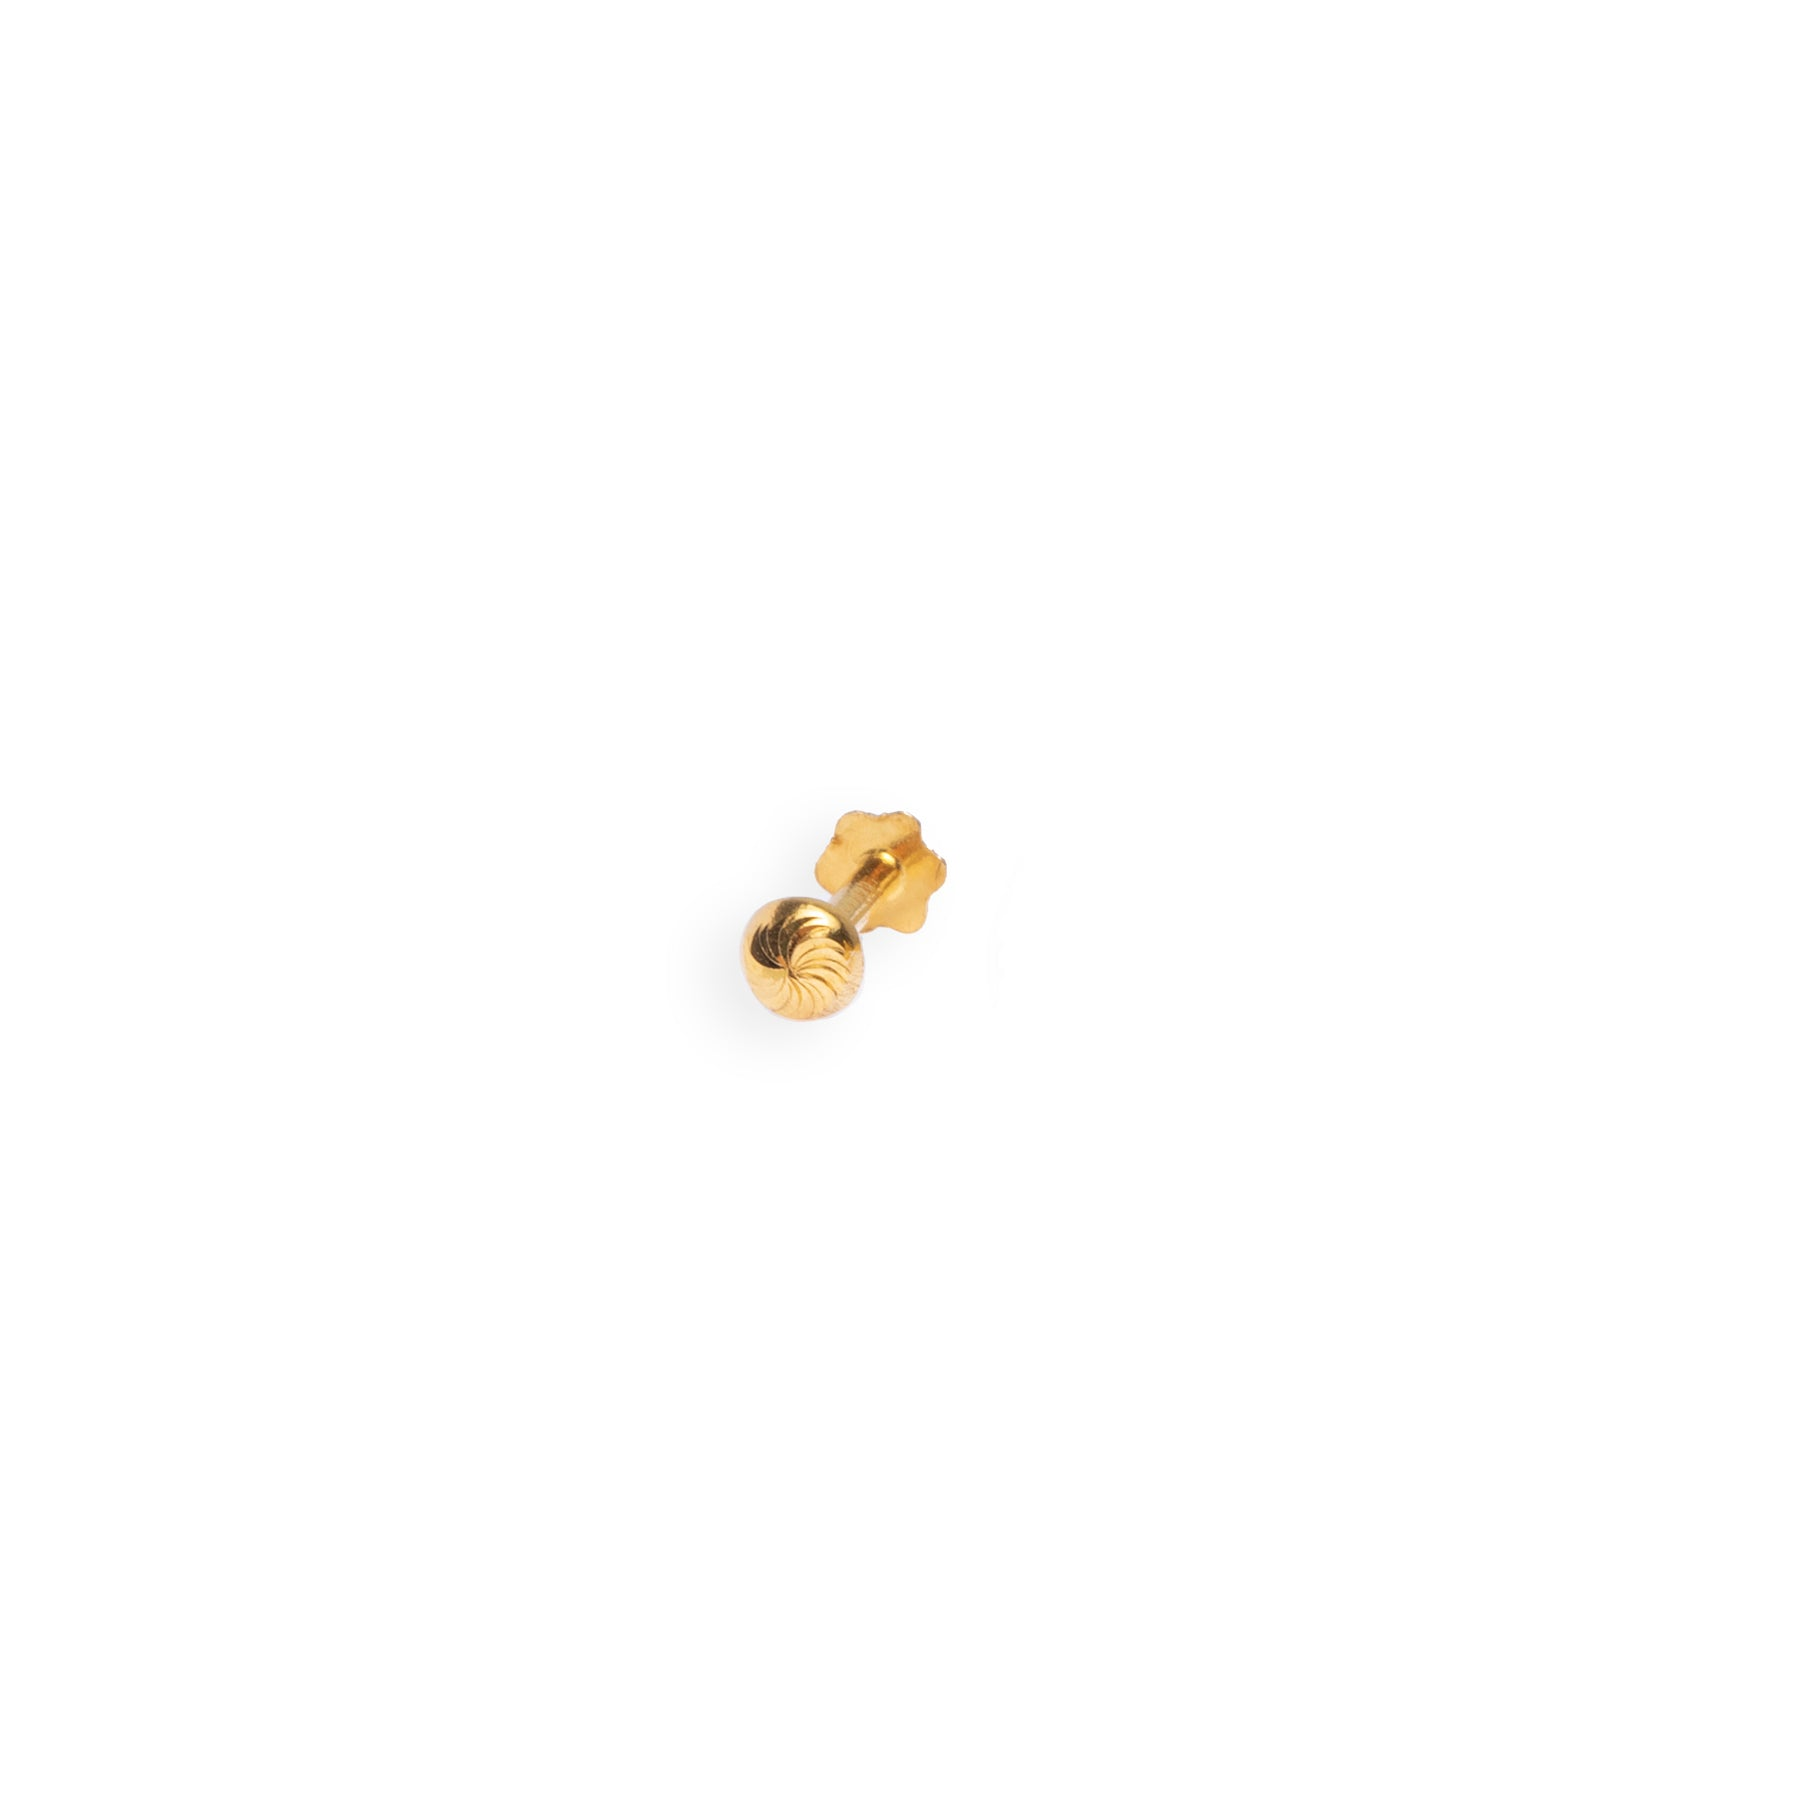 18ct Yellow Gold Screw Back Nose Stud with Diamond Cut Design (3mm - 5mm) NIP-7-900